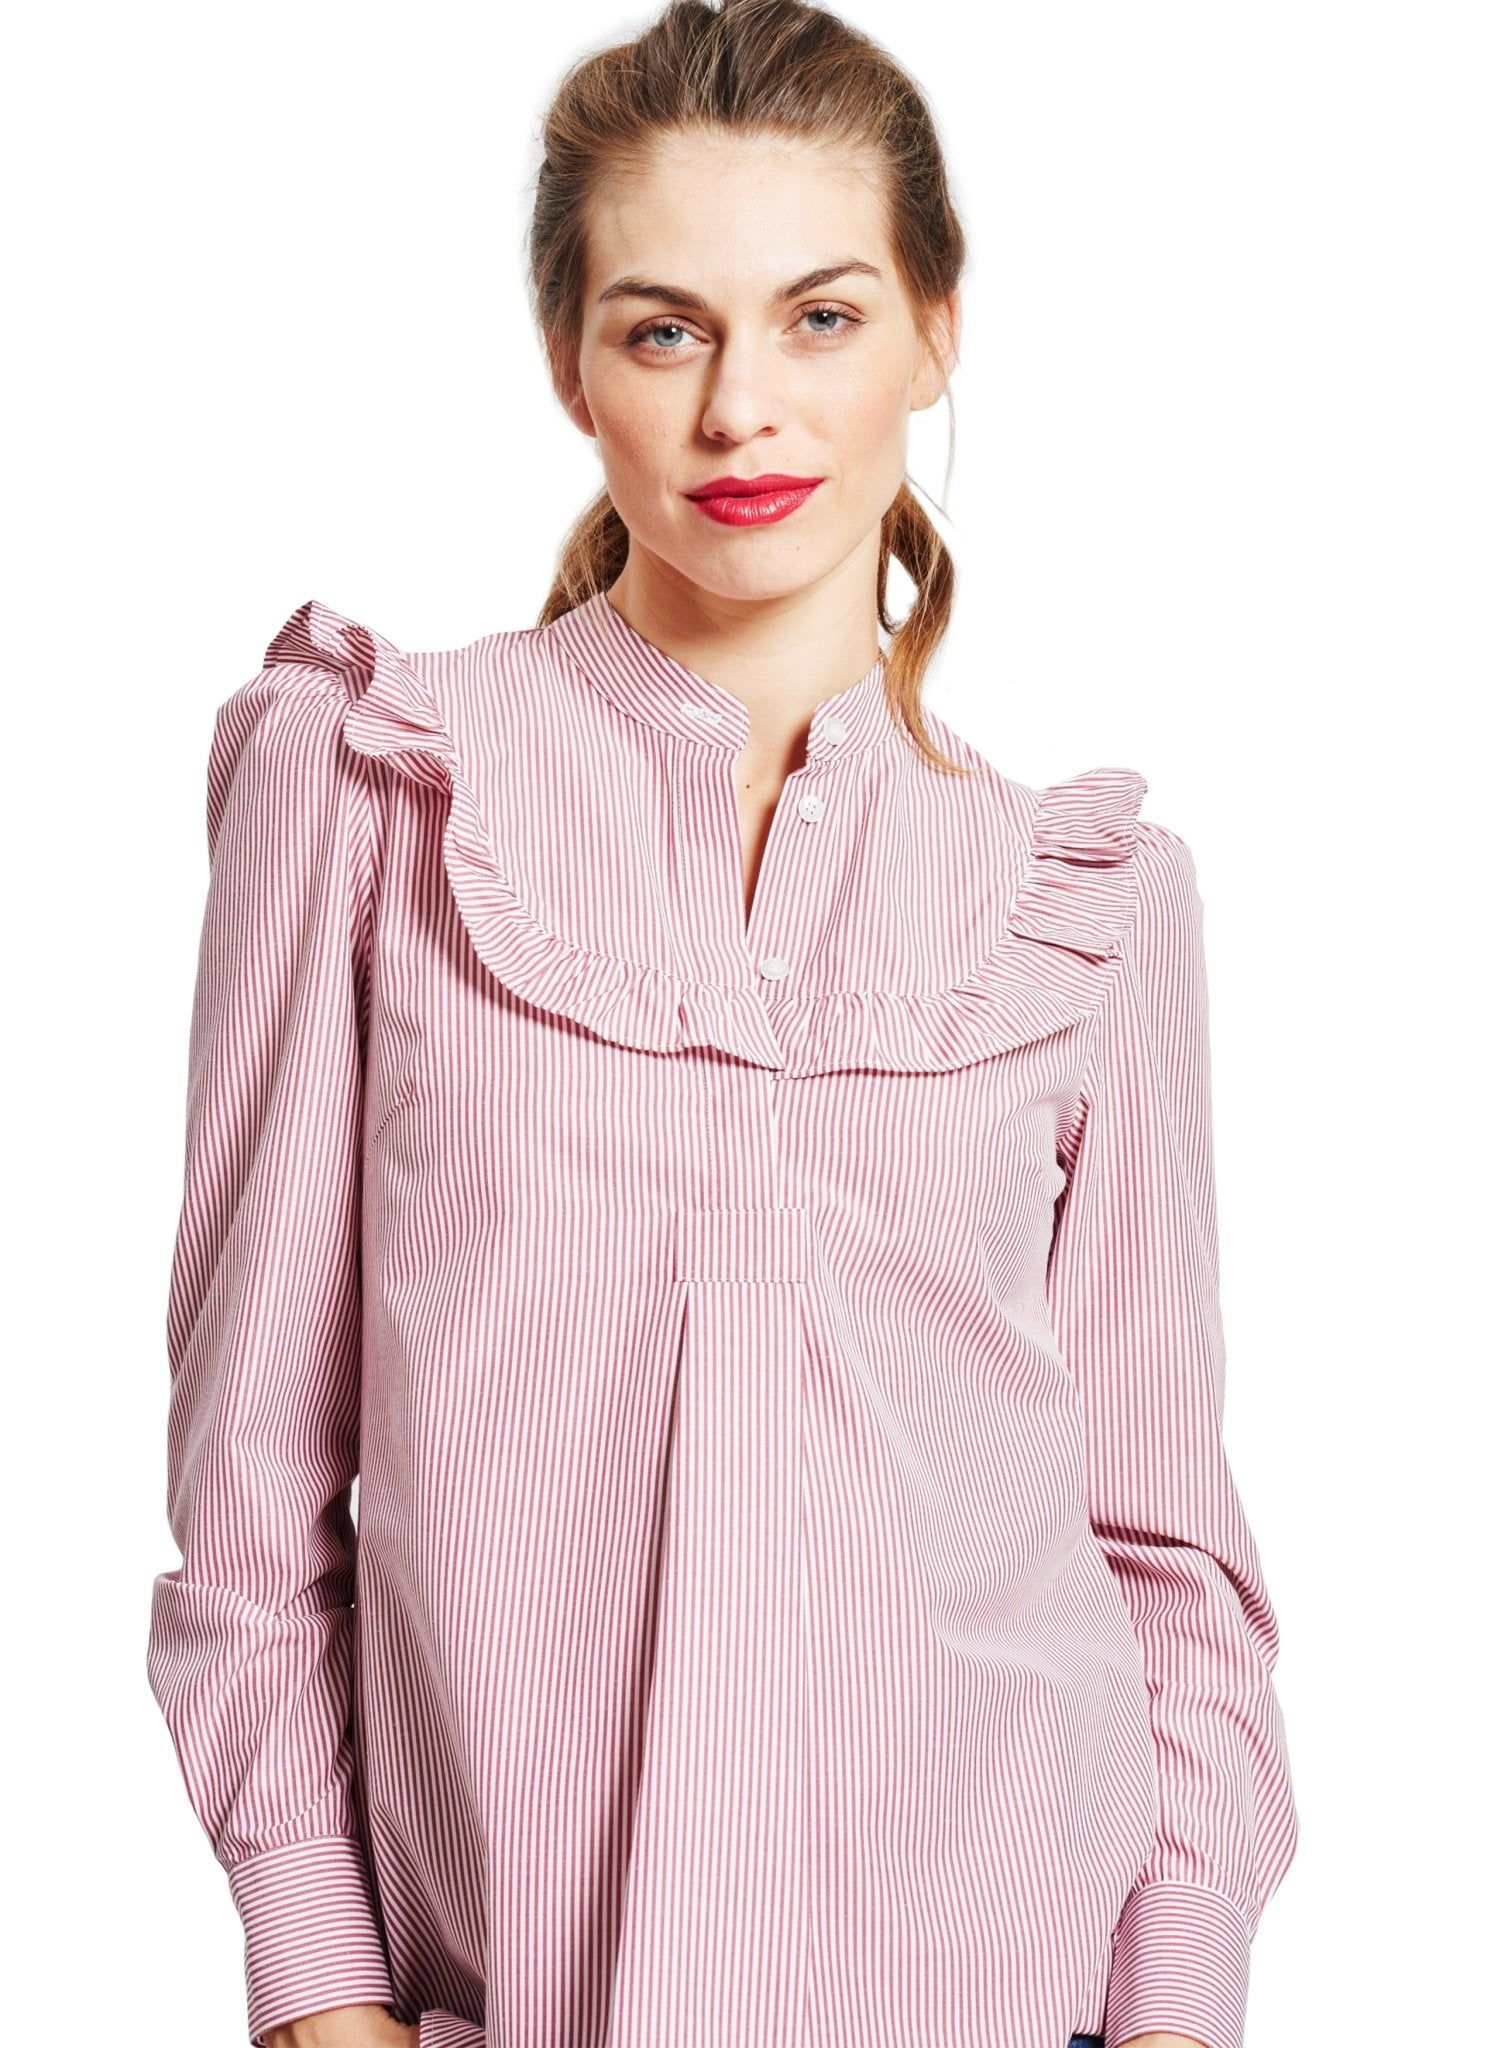 Aria Ruffle Maternity Blouse - Red & White Pinstripe - Mums and Bumps